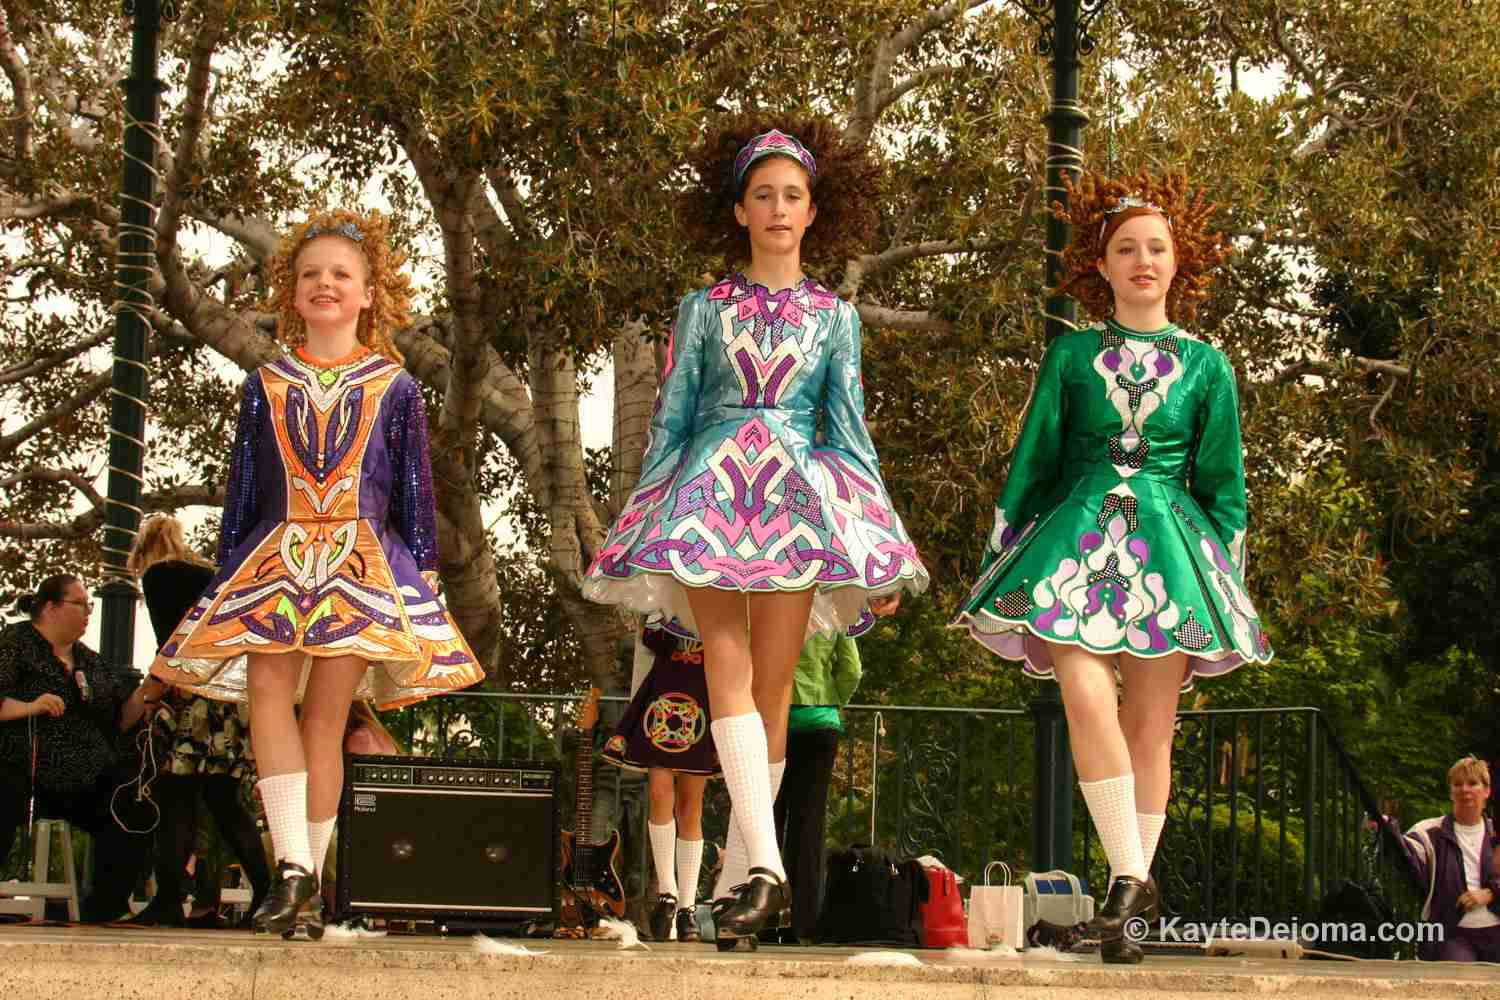 Irish Dancers at St. Patrick's Day in Los Angeles